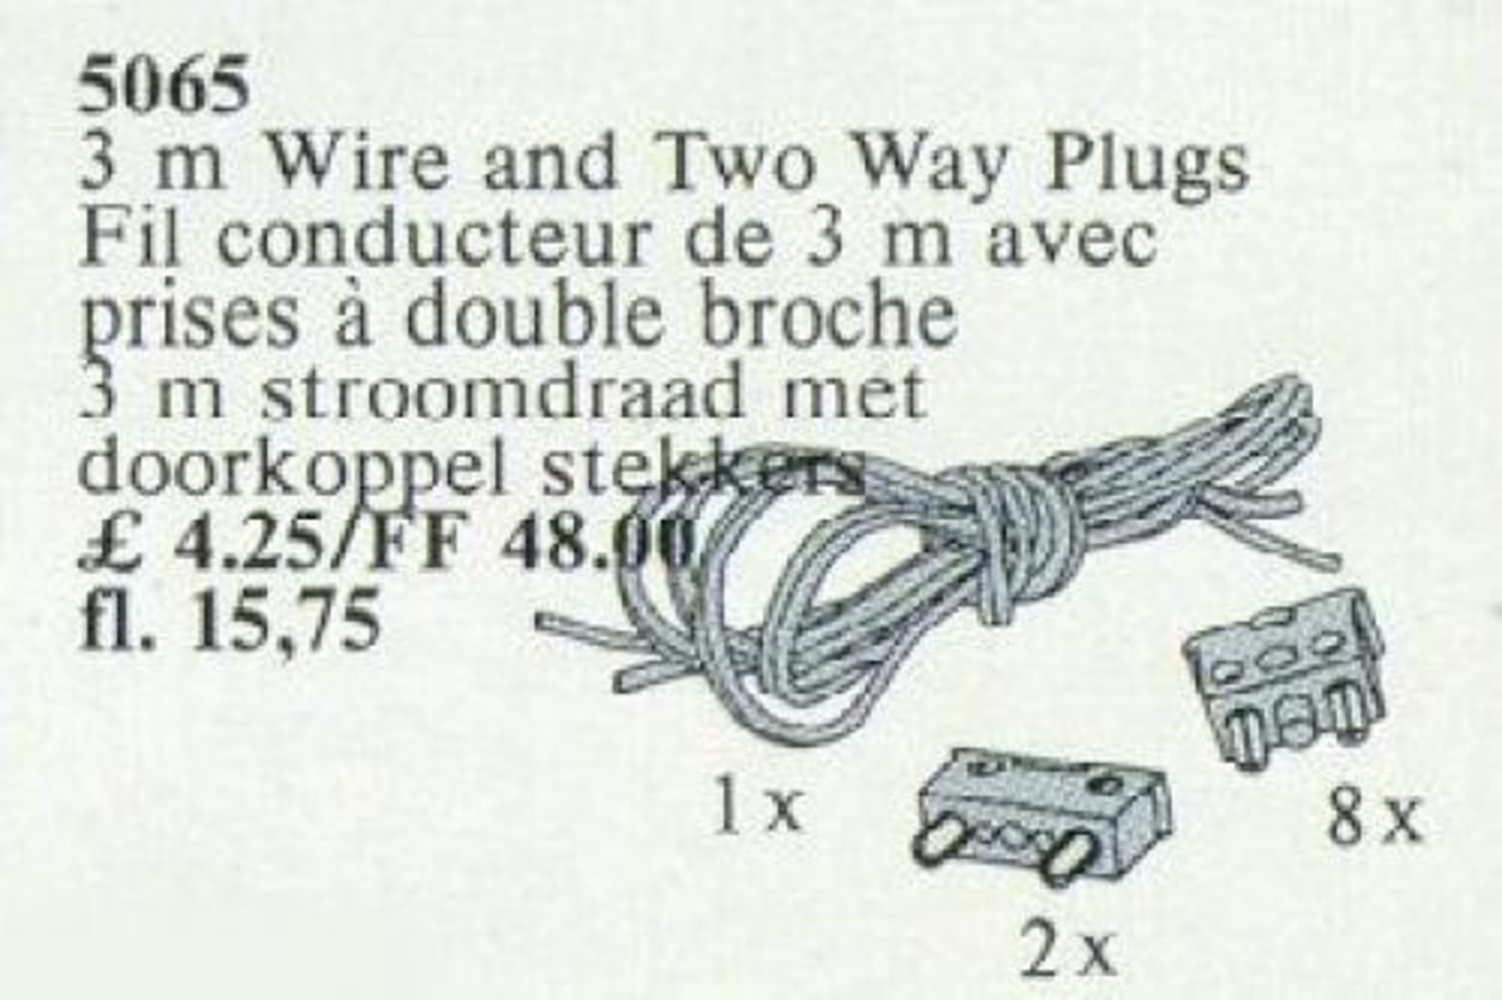 3m Wiring and Two-Way Plug